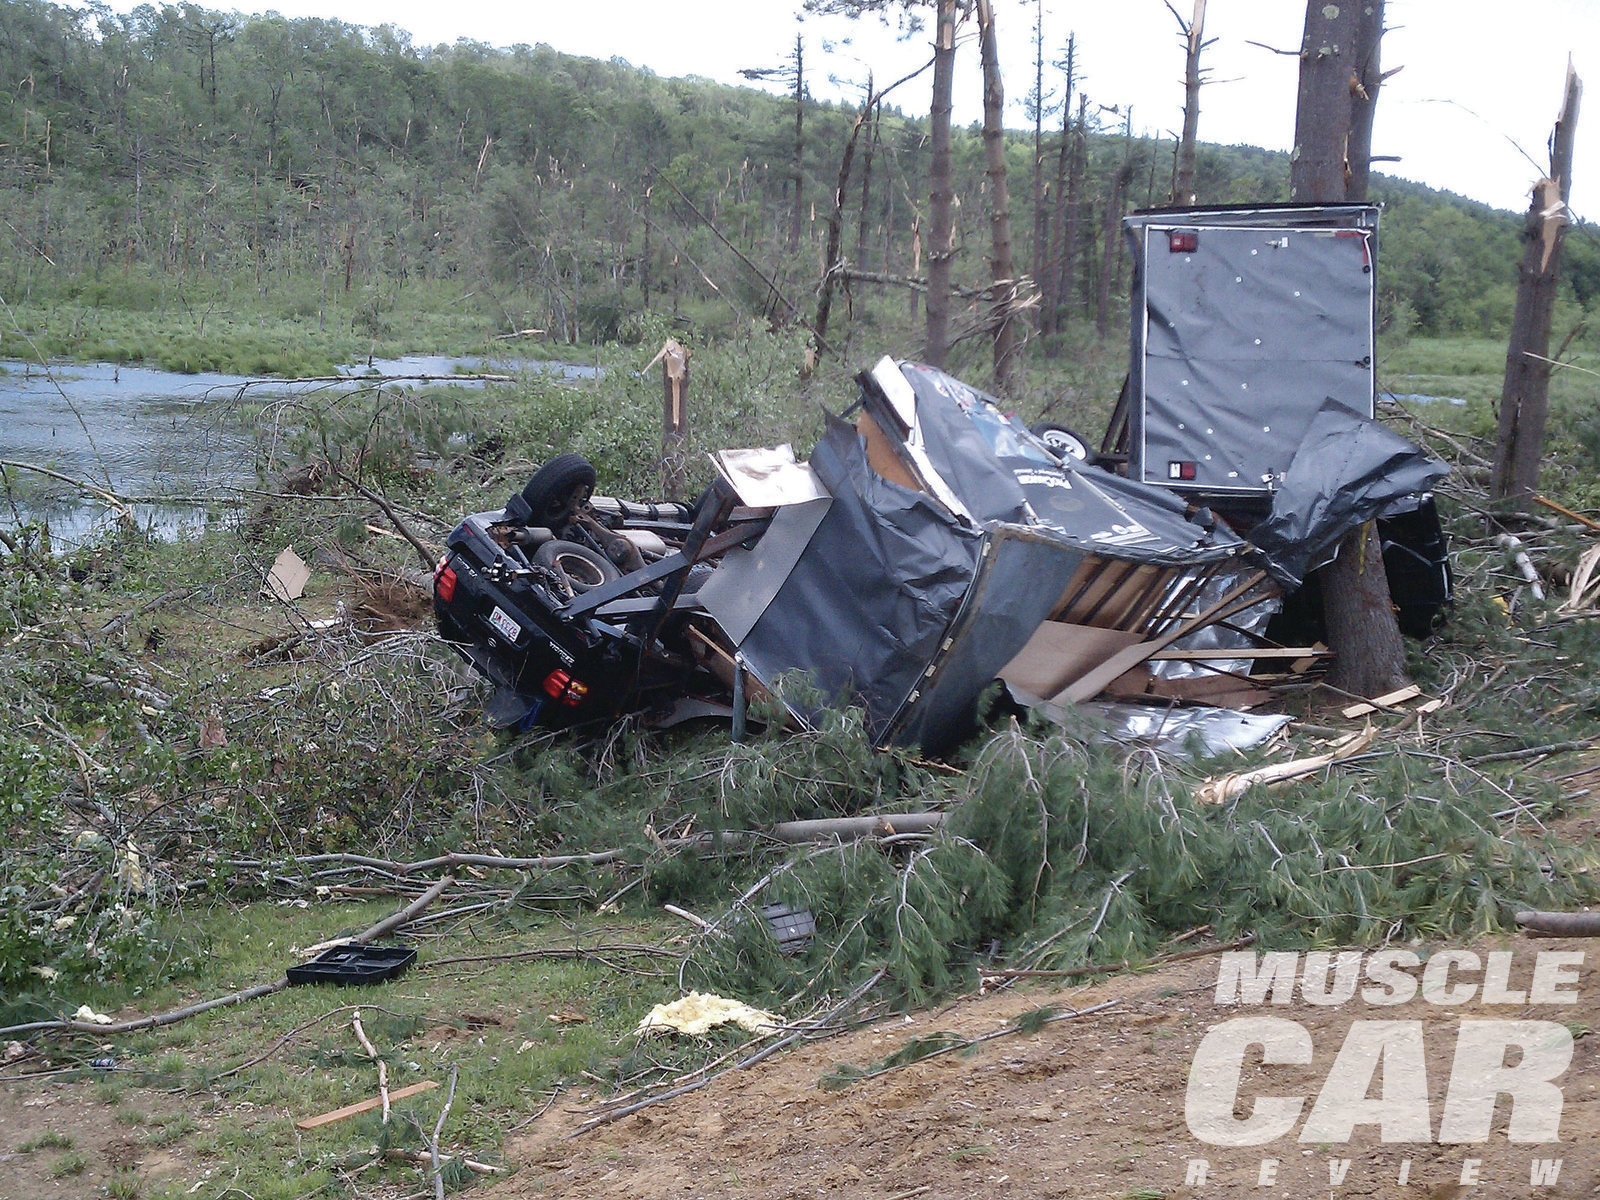 "The tornado wasn't picky. Francisco ""Cisco"" Gonzalez's new Toyota Sequoia tow vehicle (still connected to the trailer) and a mint, low-mile '86 Buick GN were also destroyed. The black form to the right of the trailer behind the tree trunk is the front end of the formerly mighty turbo Buick, now reduced to junk."